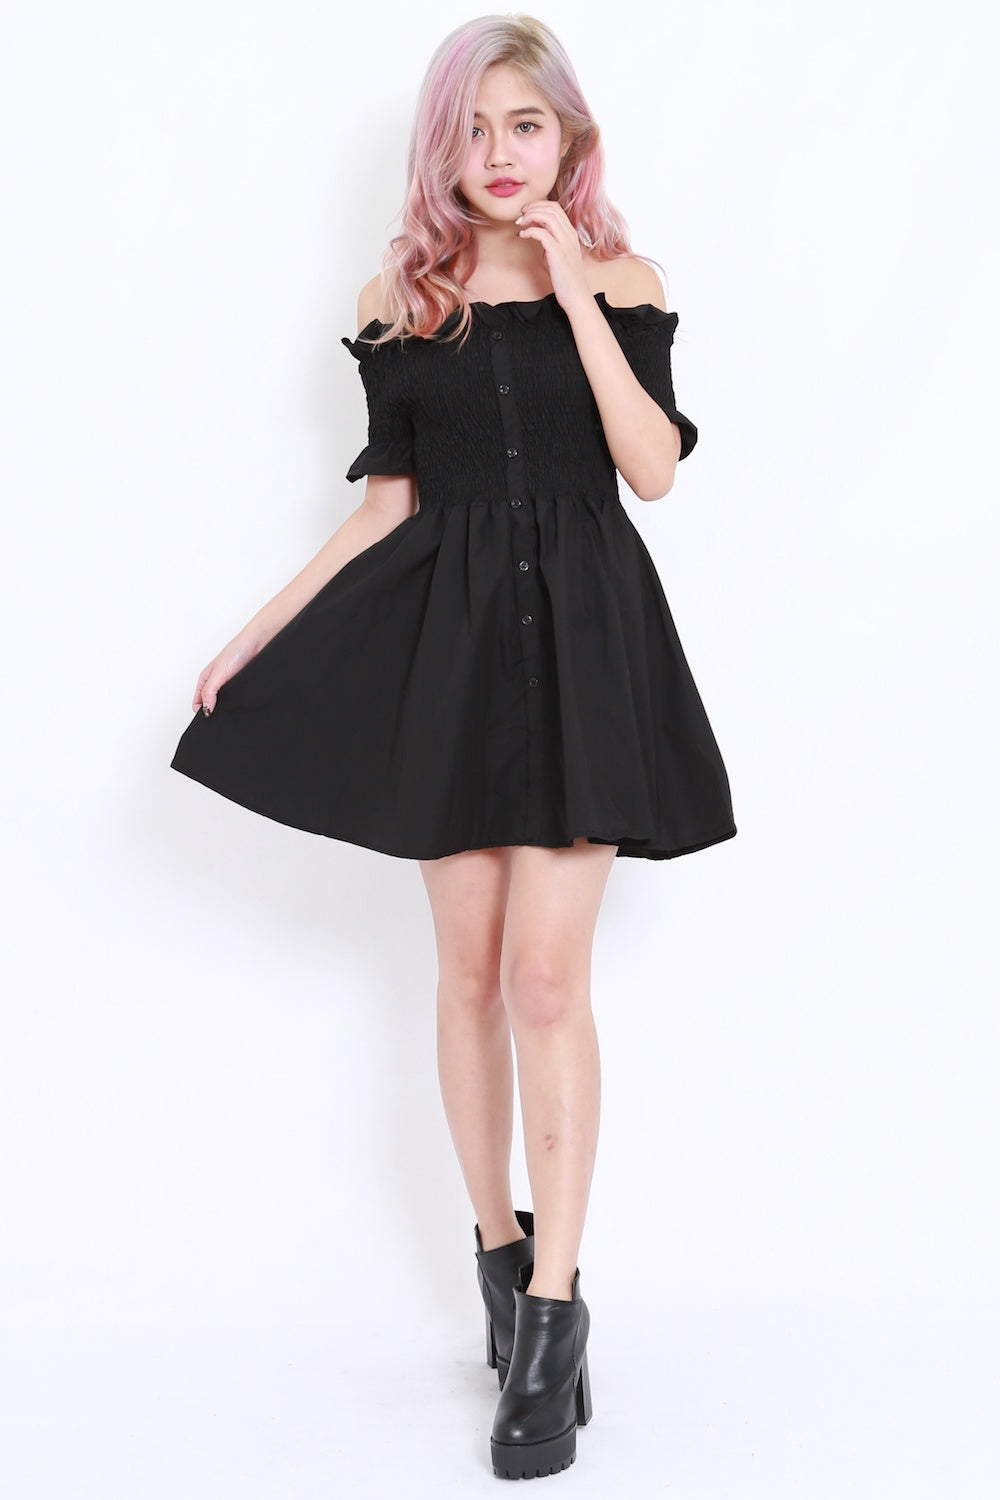 Buttons Smoked Offsie Dress SS (Black)